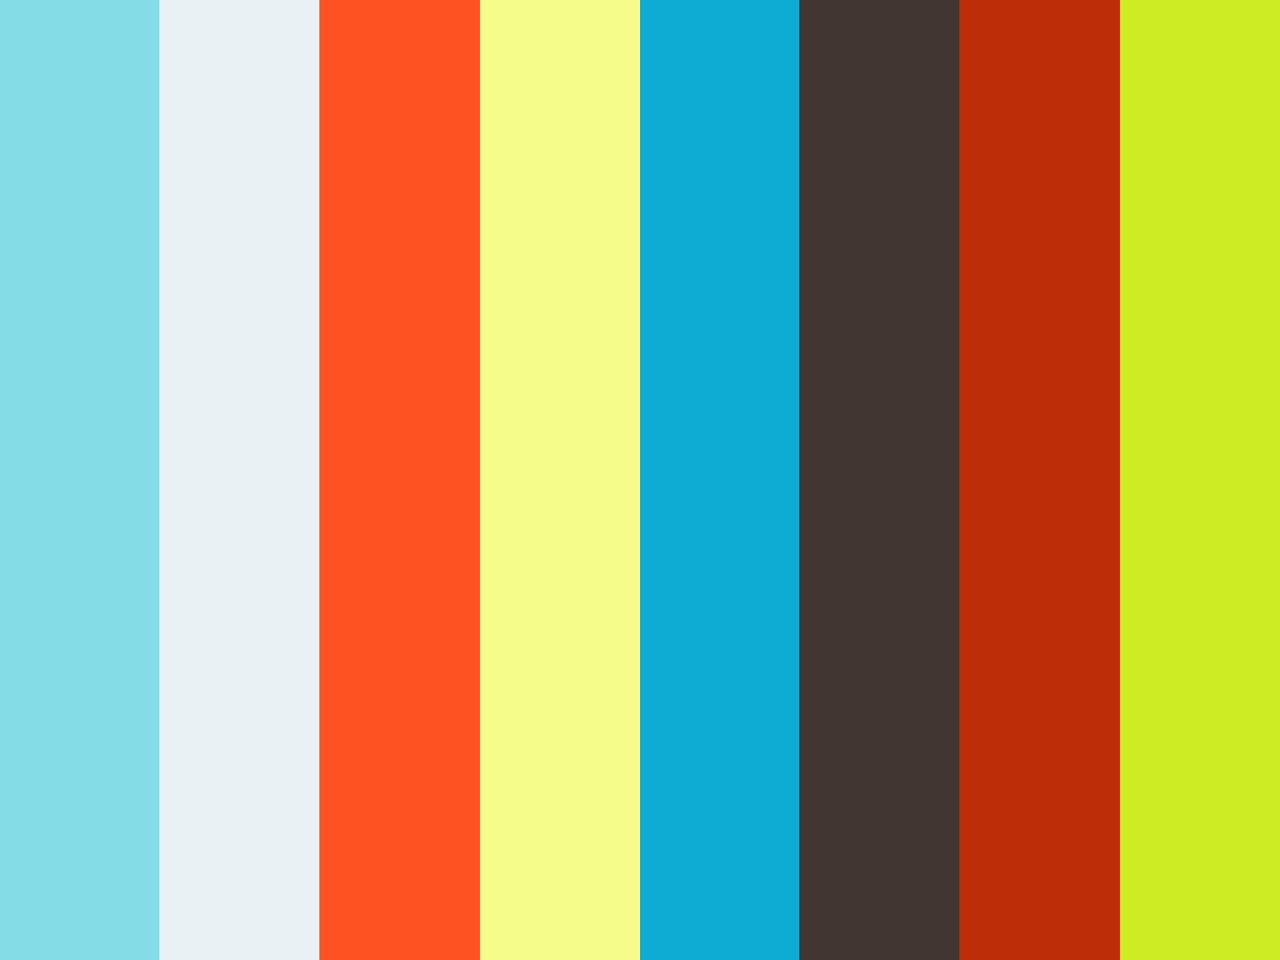 why is there a tractor in my yard?